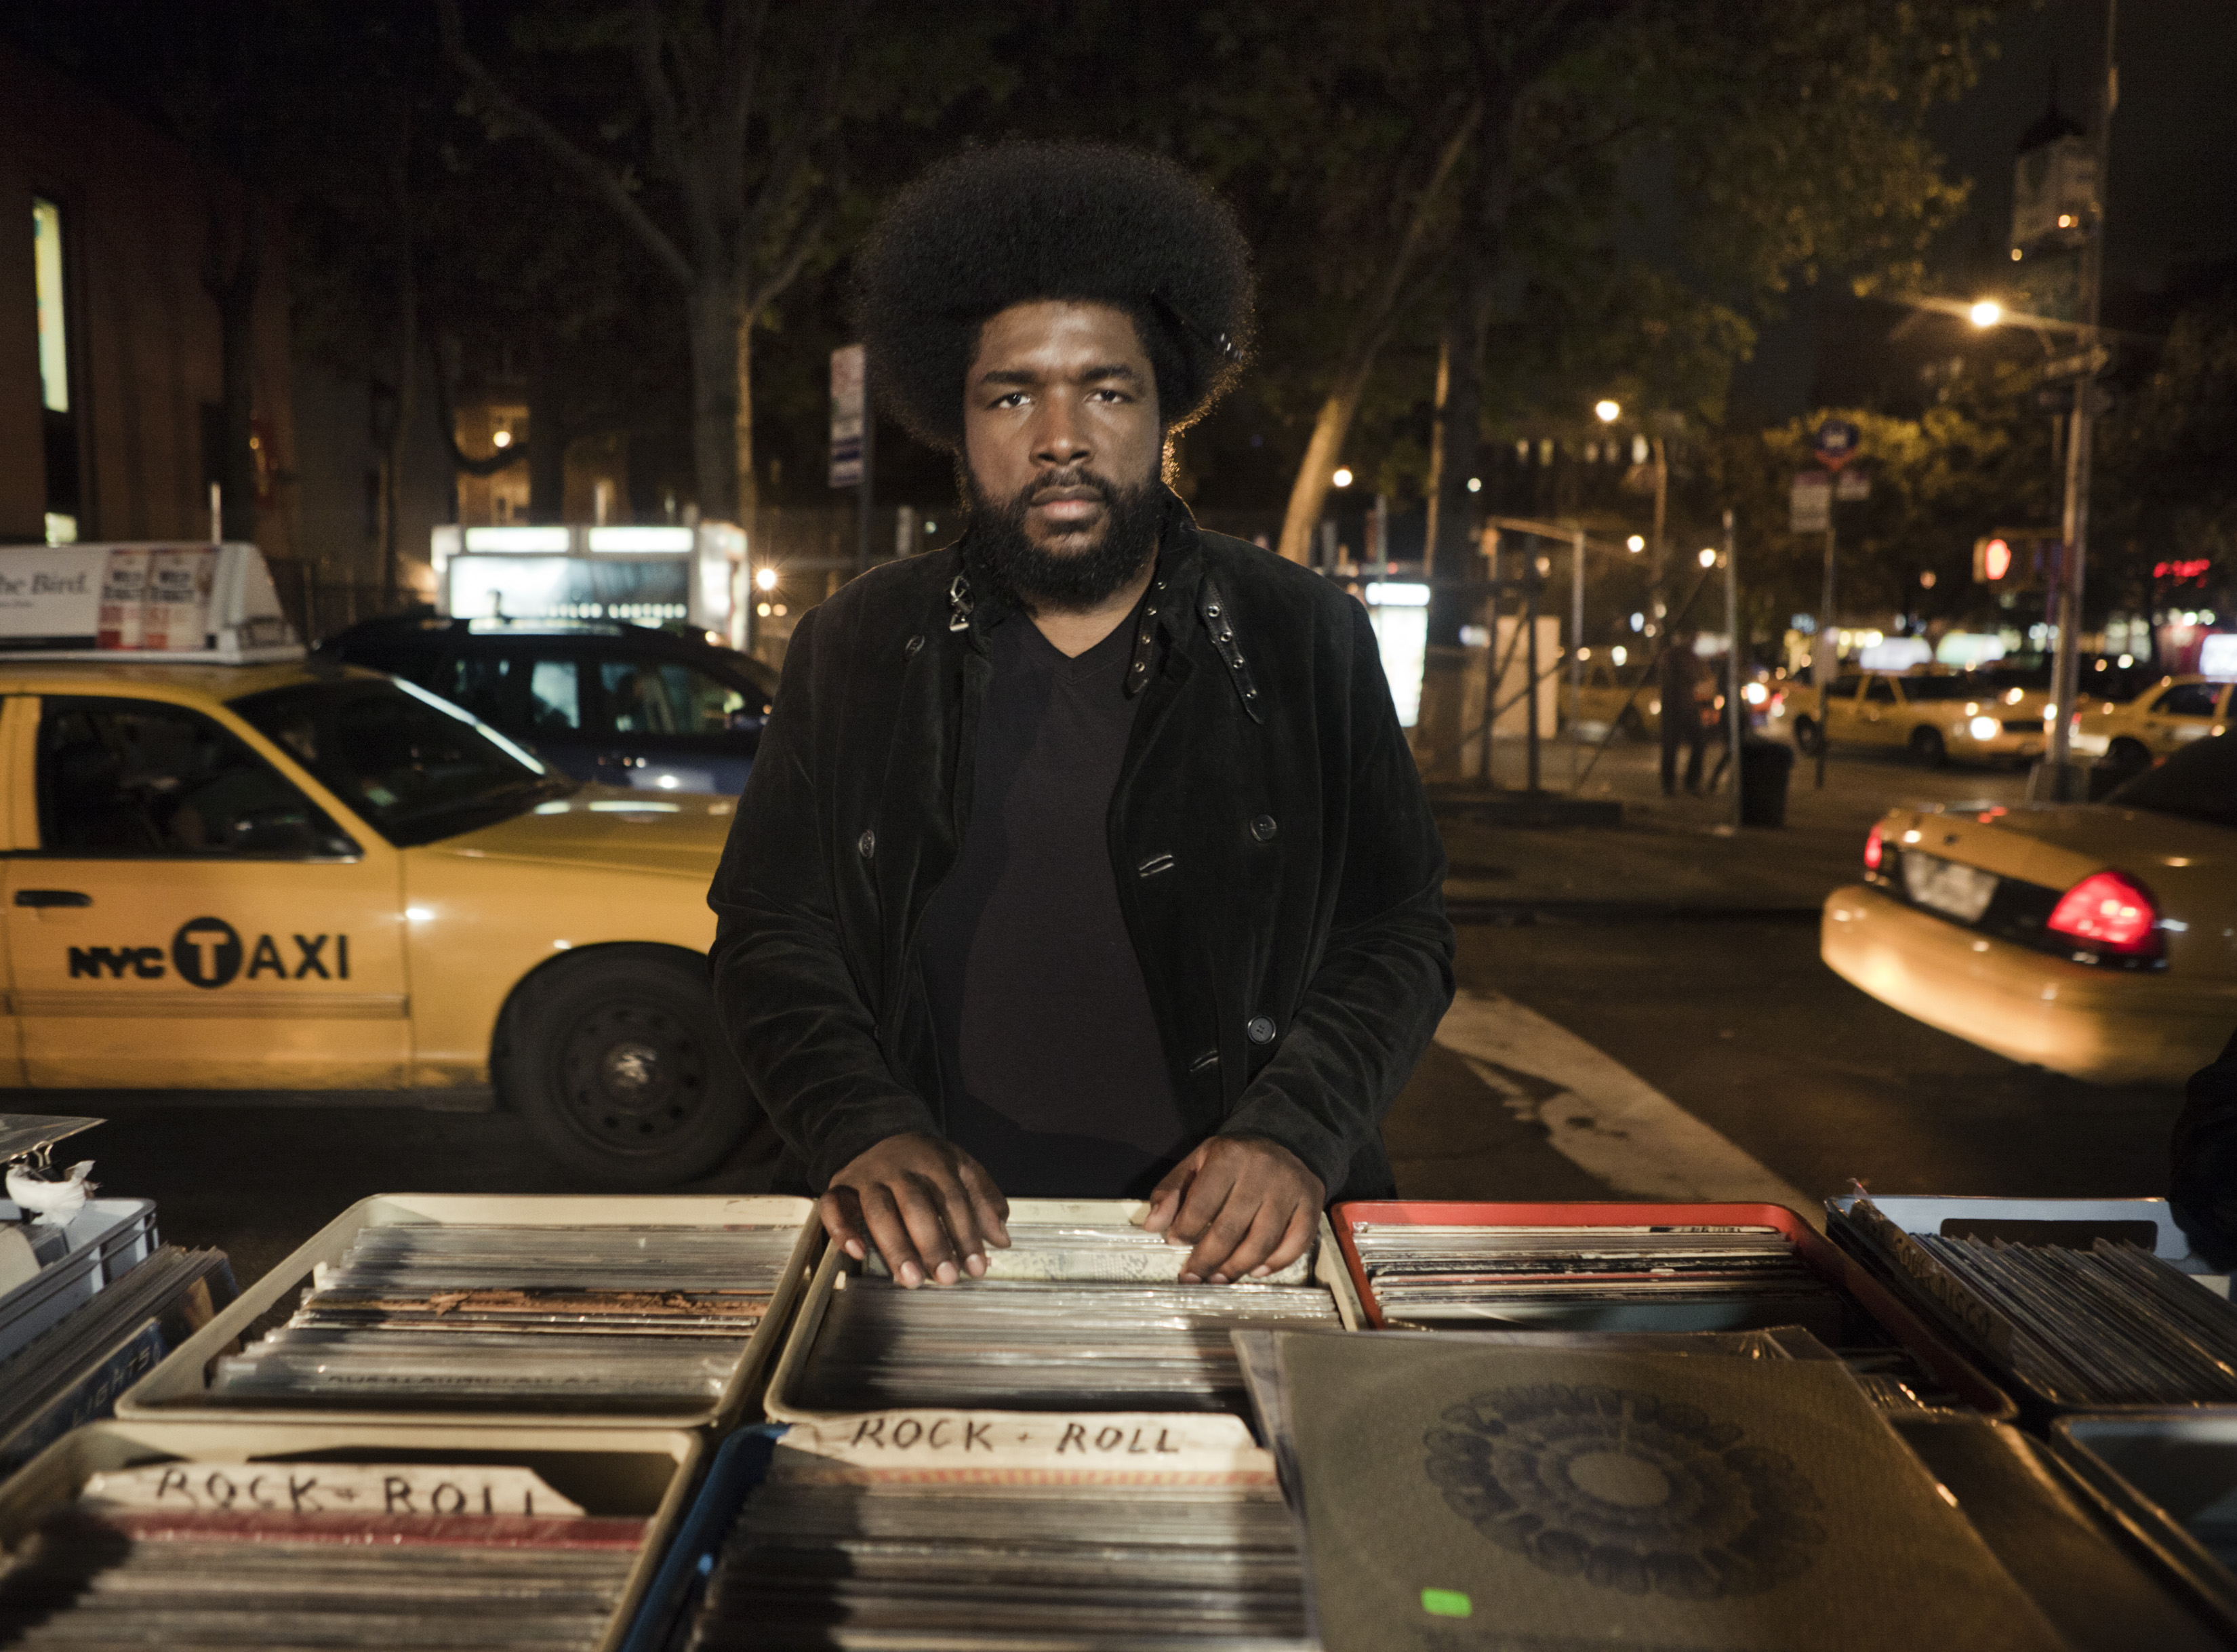 Questlove NYC Records Pic